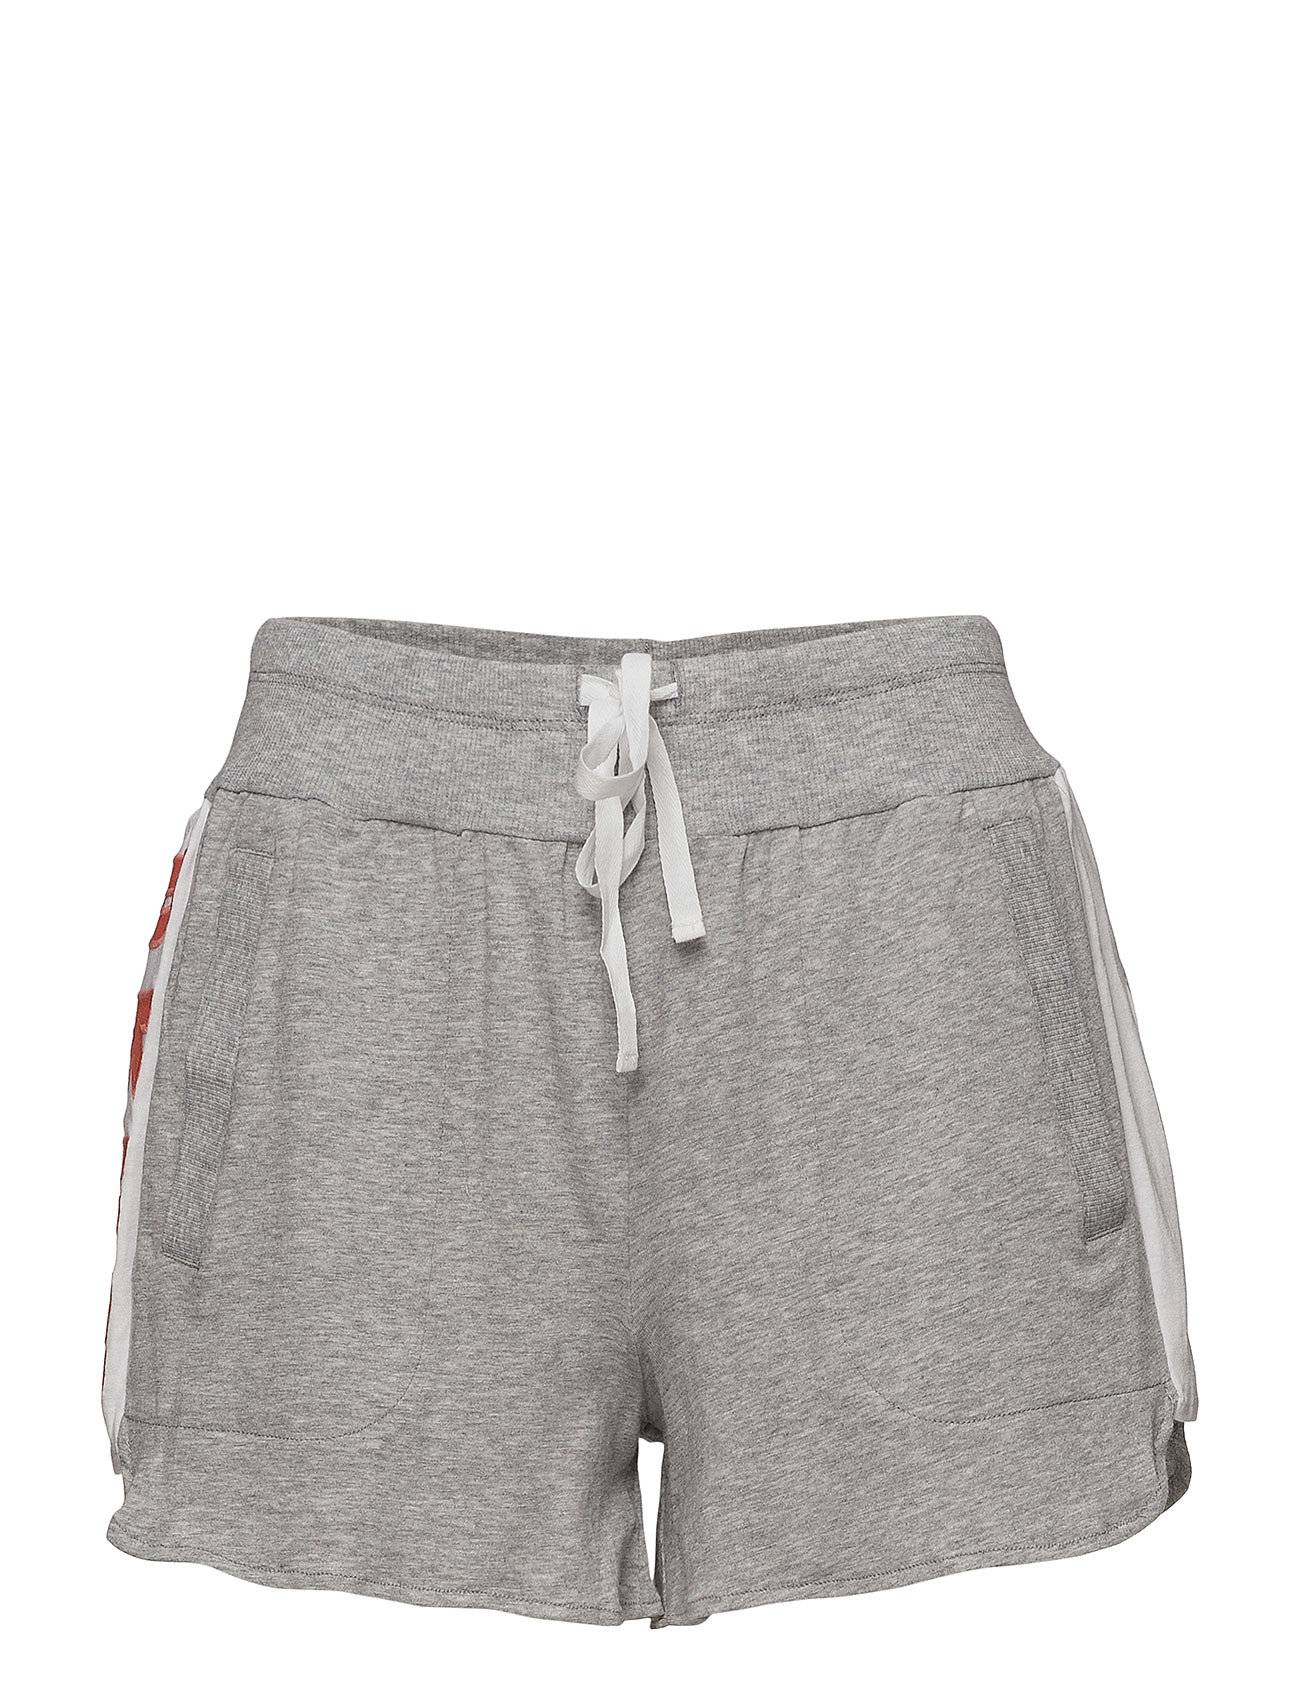 DKNY Homewear Dkny Spell It Out Boxer